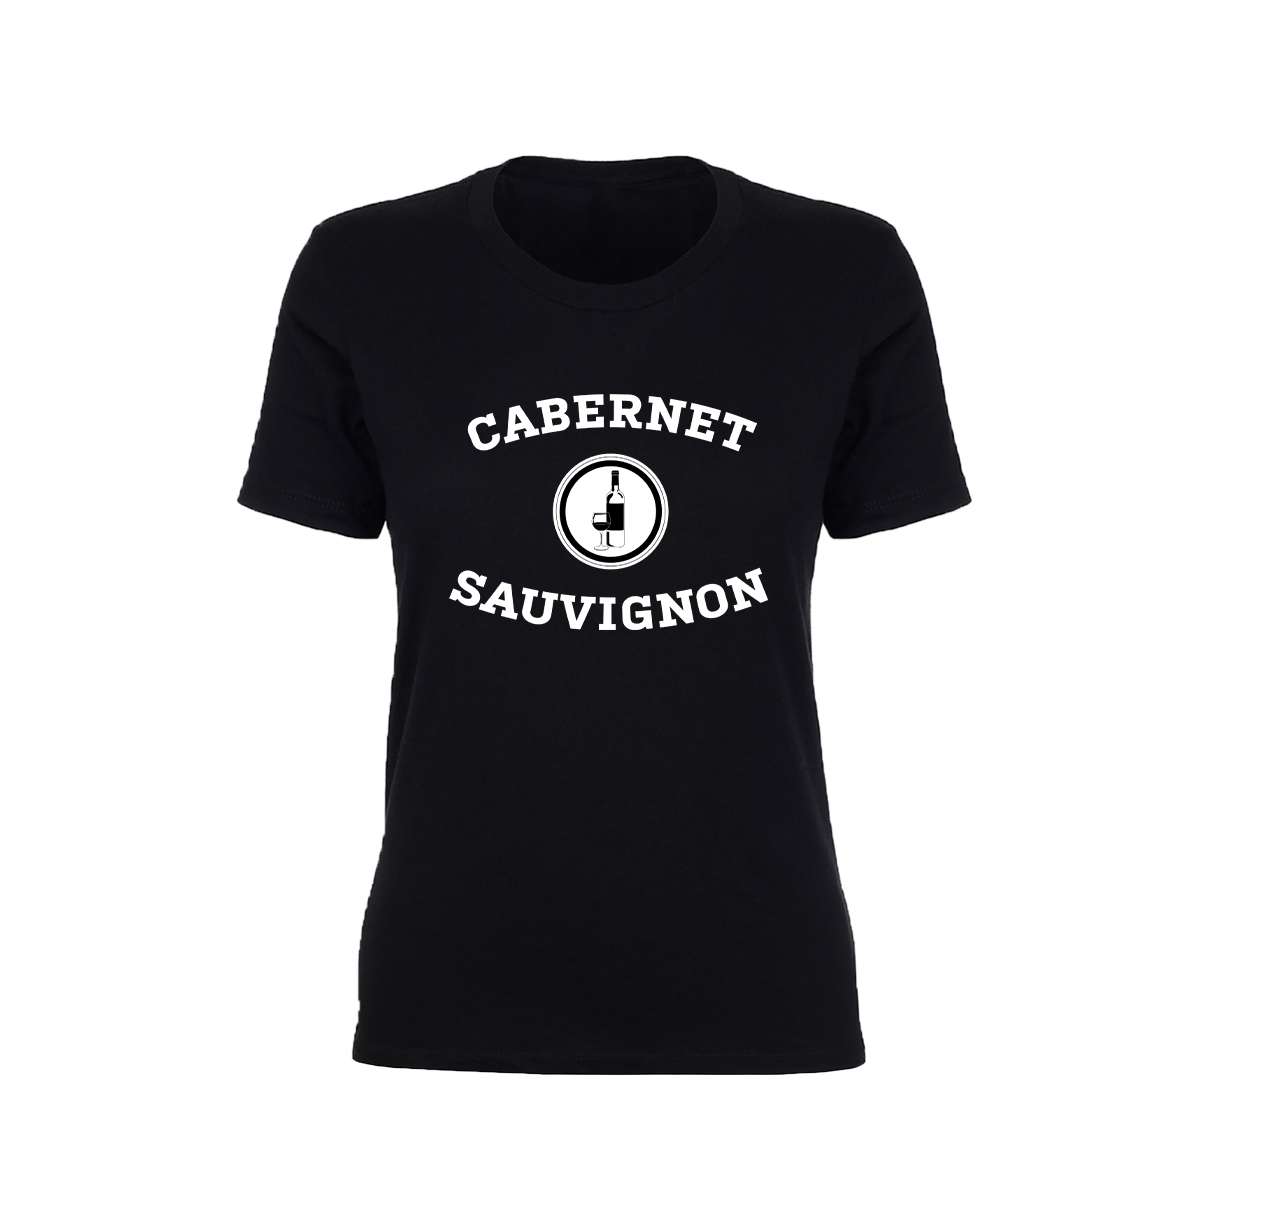 the black buzzfeed cabernet sauvignon collegiate t-shirt